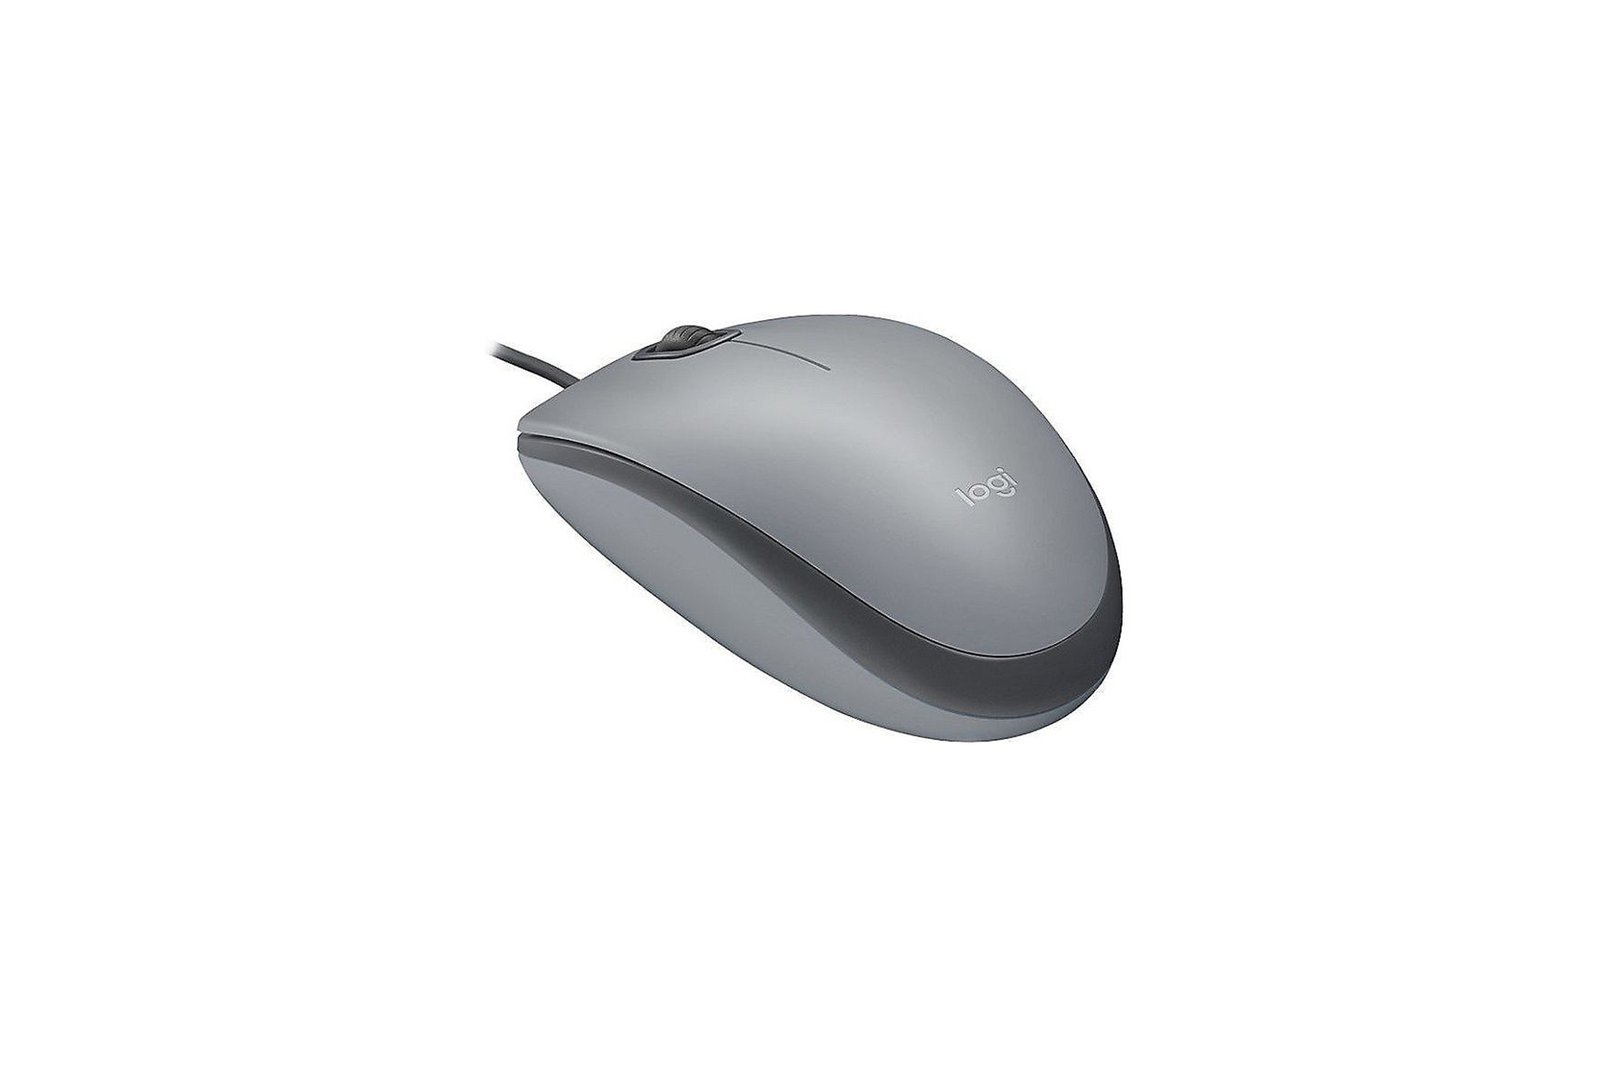 Full-Size USB Wired Mouse Logitech M110 Silent 1000DPI